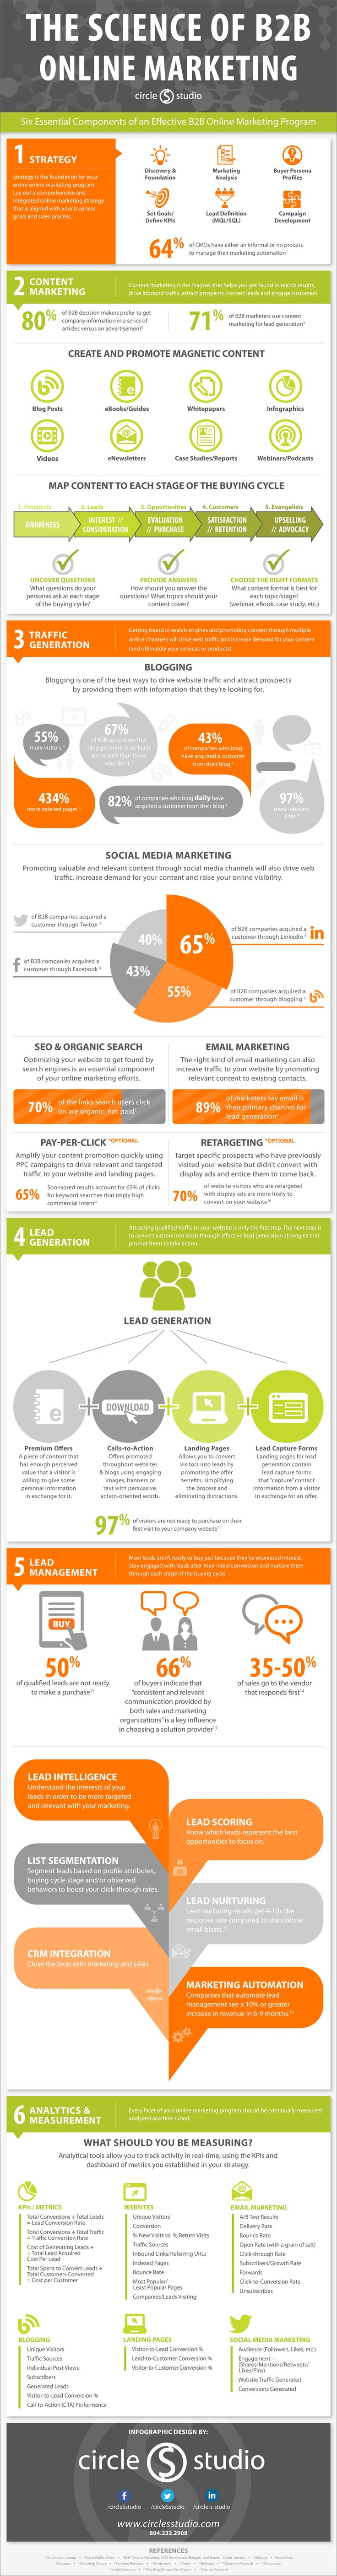 The Science of B2B Online Marketing [INFOGRAPHIC] #smmktg